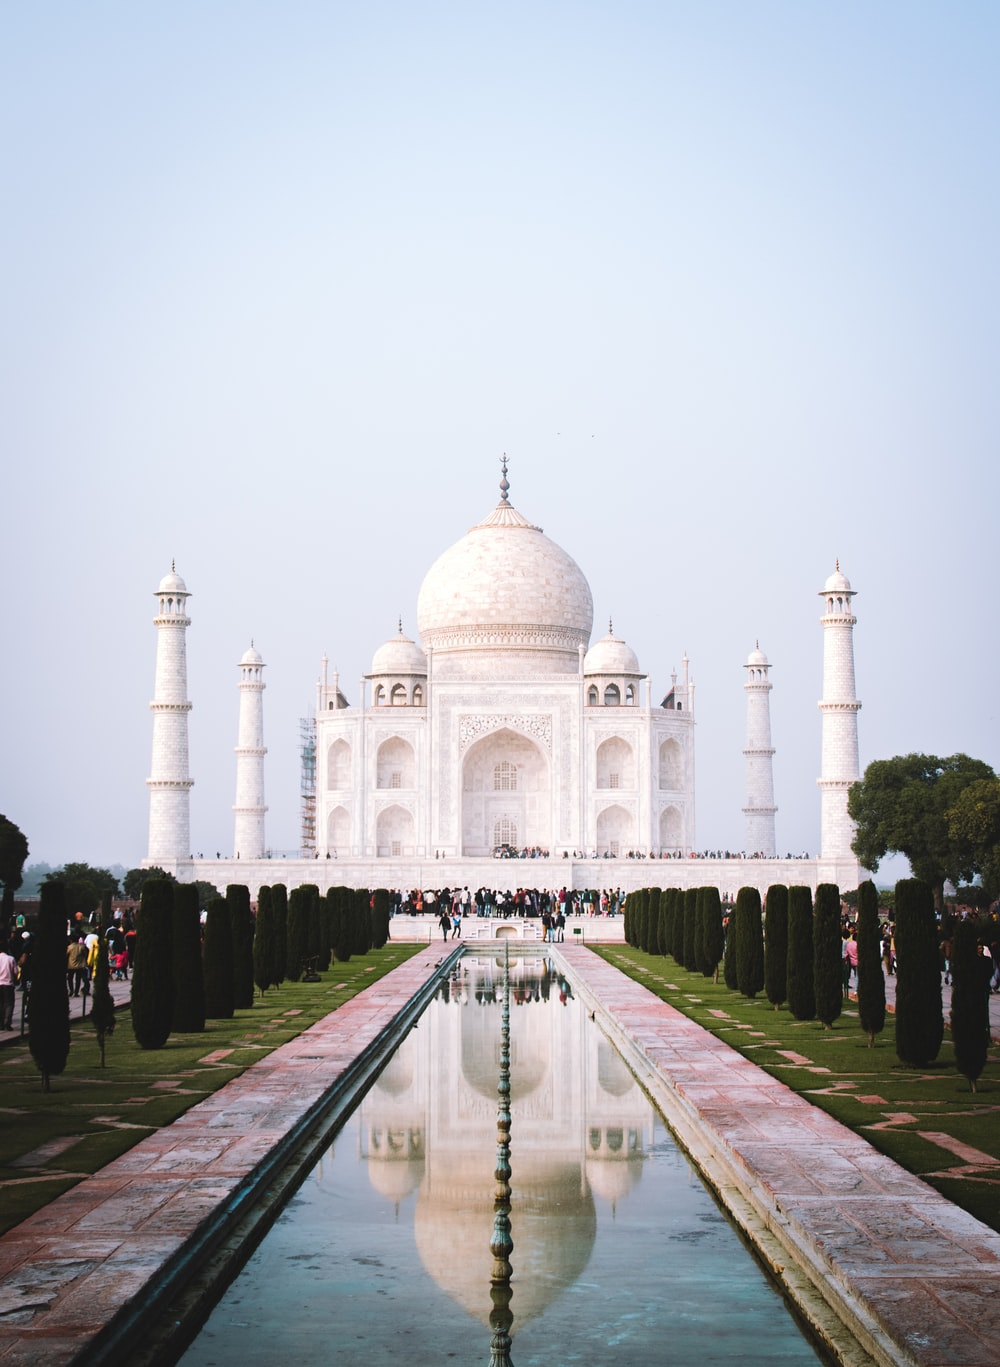 500 Taj Mahal Agra India Pictures Hd Download Free Images On